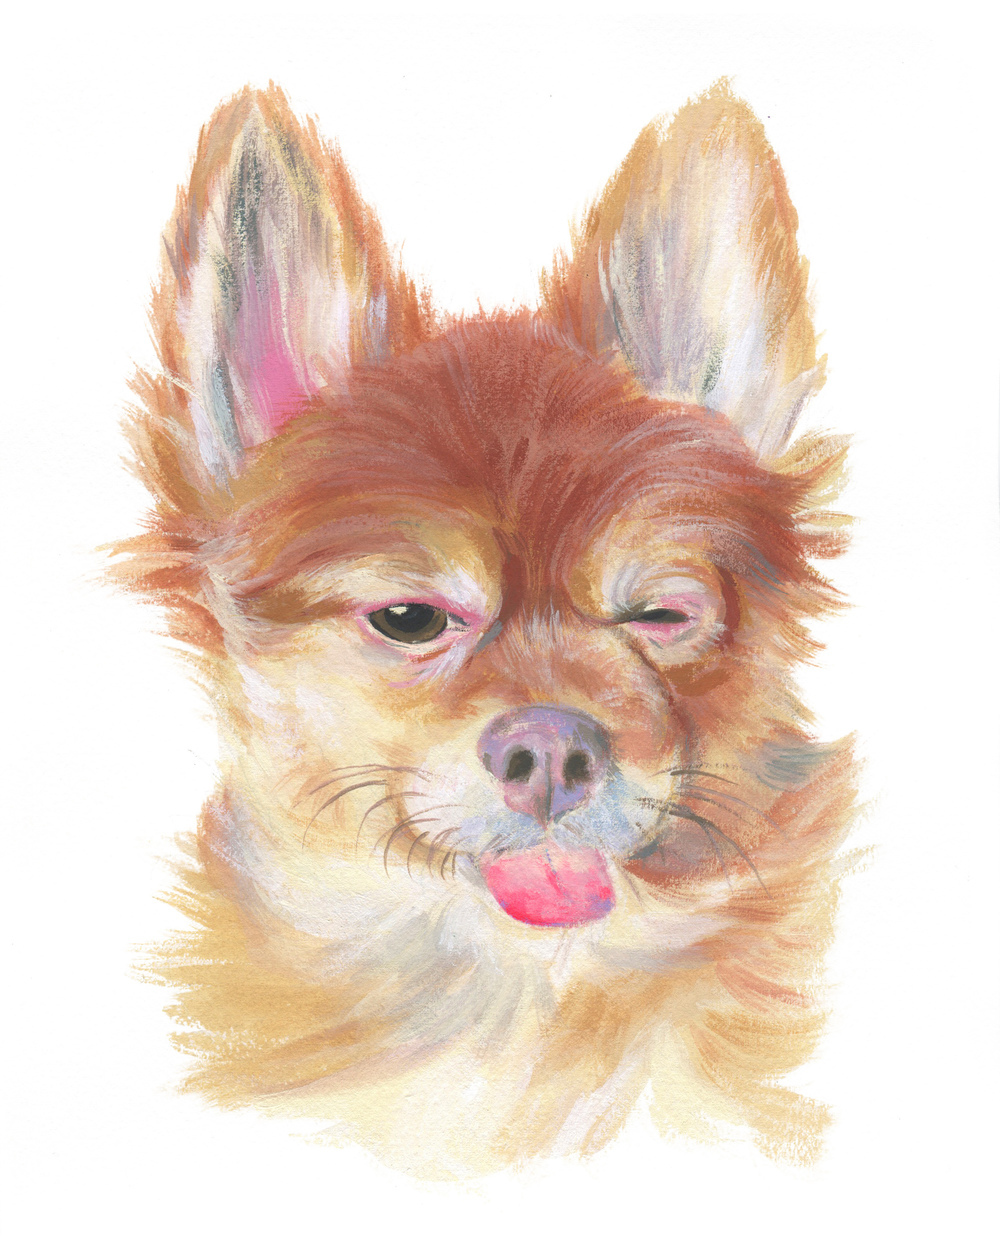 Pet Portrait_Howard Finkelstein.jpg